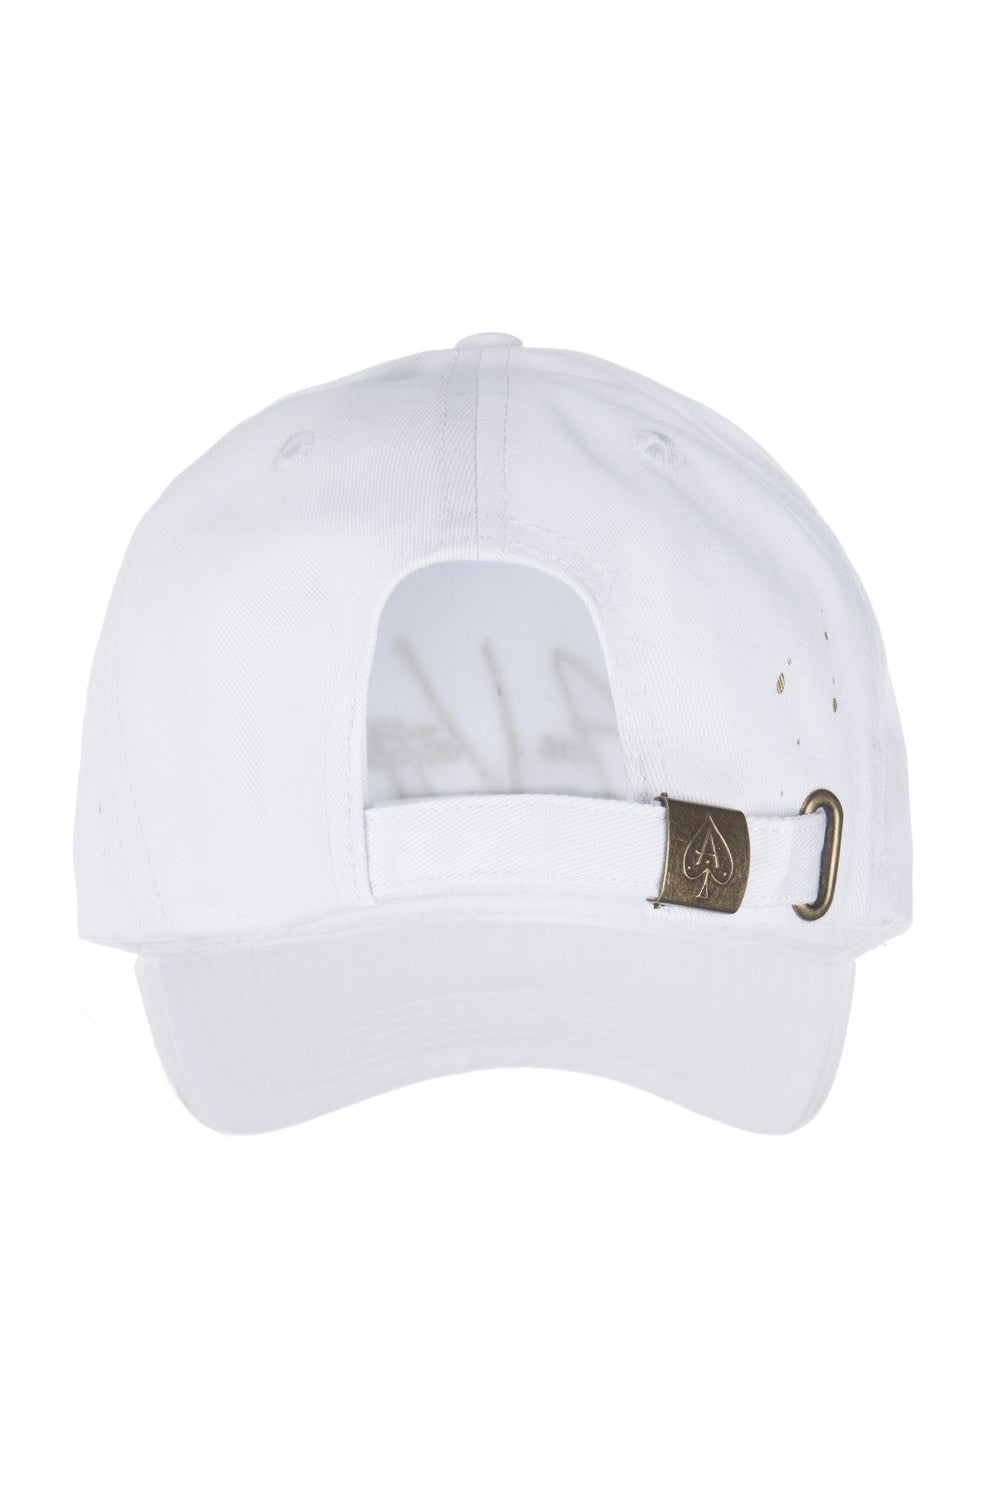 Ace Vestiti Signature BaseBall Cap - White/Gold - 3